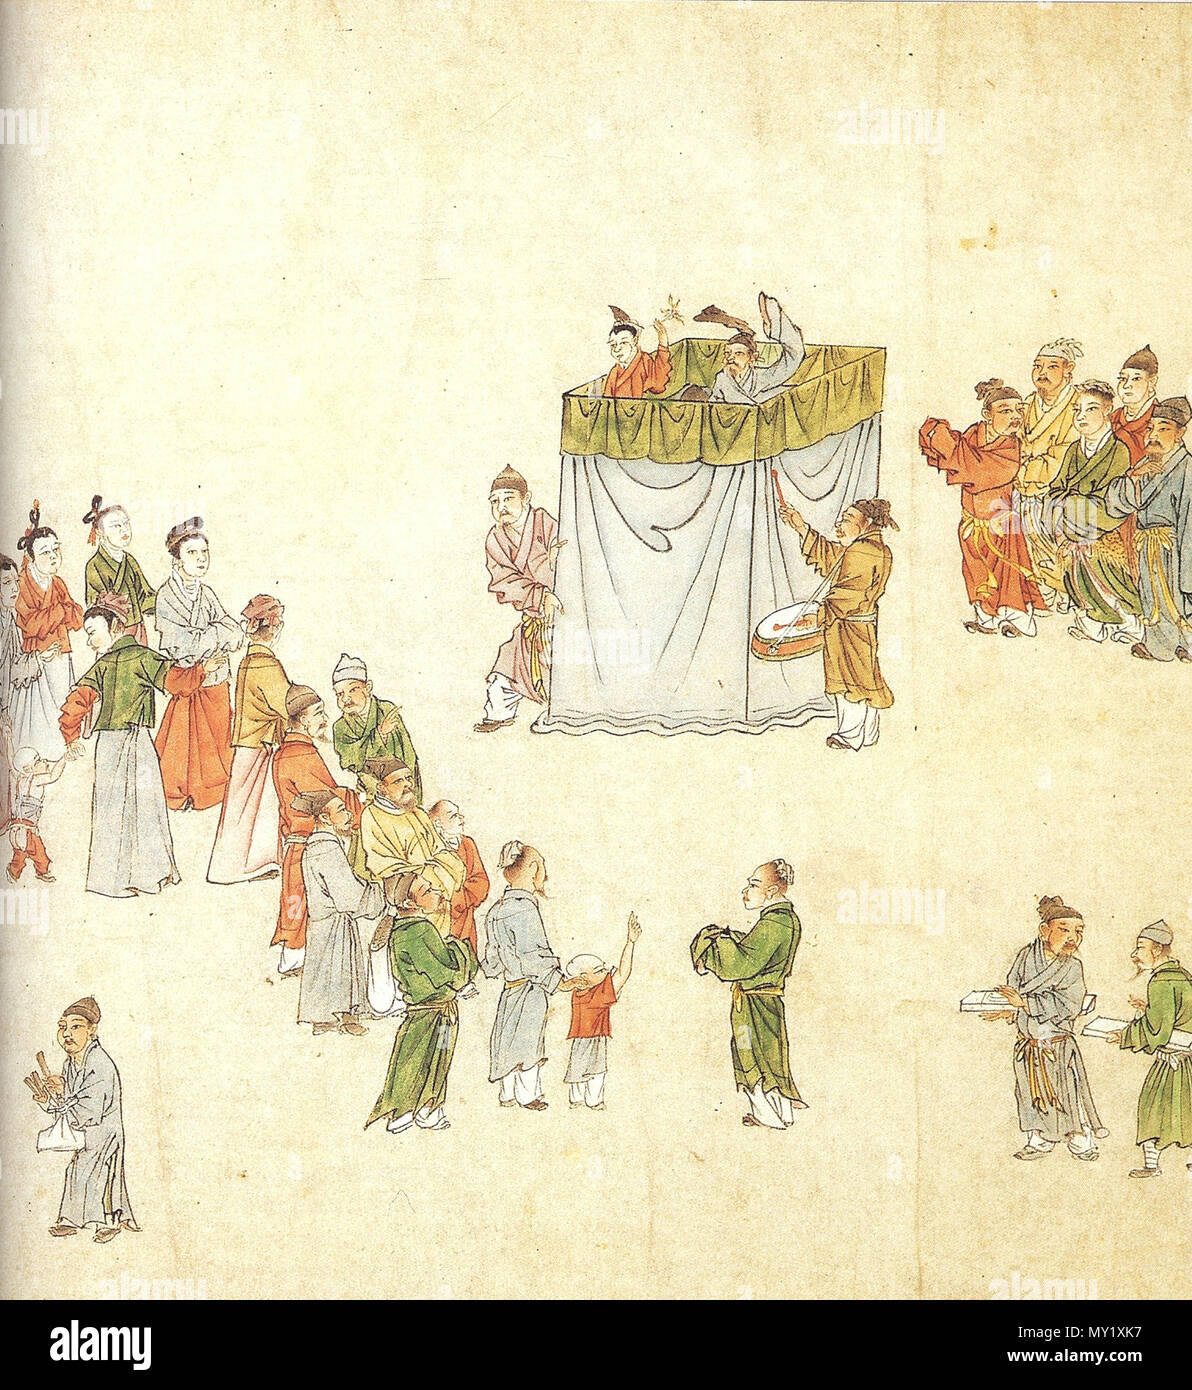 . Story-tellers and puppeteers in China entertained city-dwellers with much the same stories that playwrights worked into their polished dramatic texts. Detail from a fourteenth-century handscroll in ink and colour on paper. 14th century AD. Yuan Dynasty artist 441 Puppeteers draw a crowd, Yuan Dynasty - Stock Image